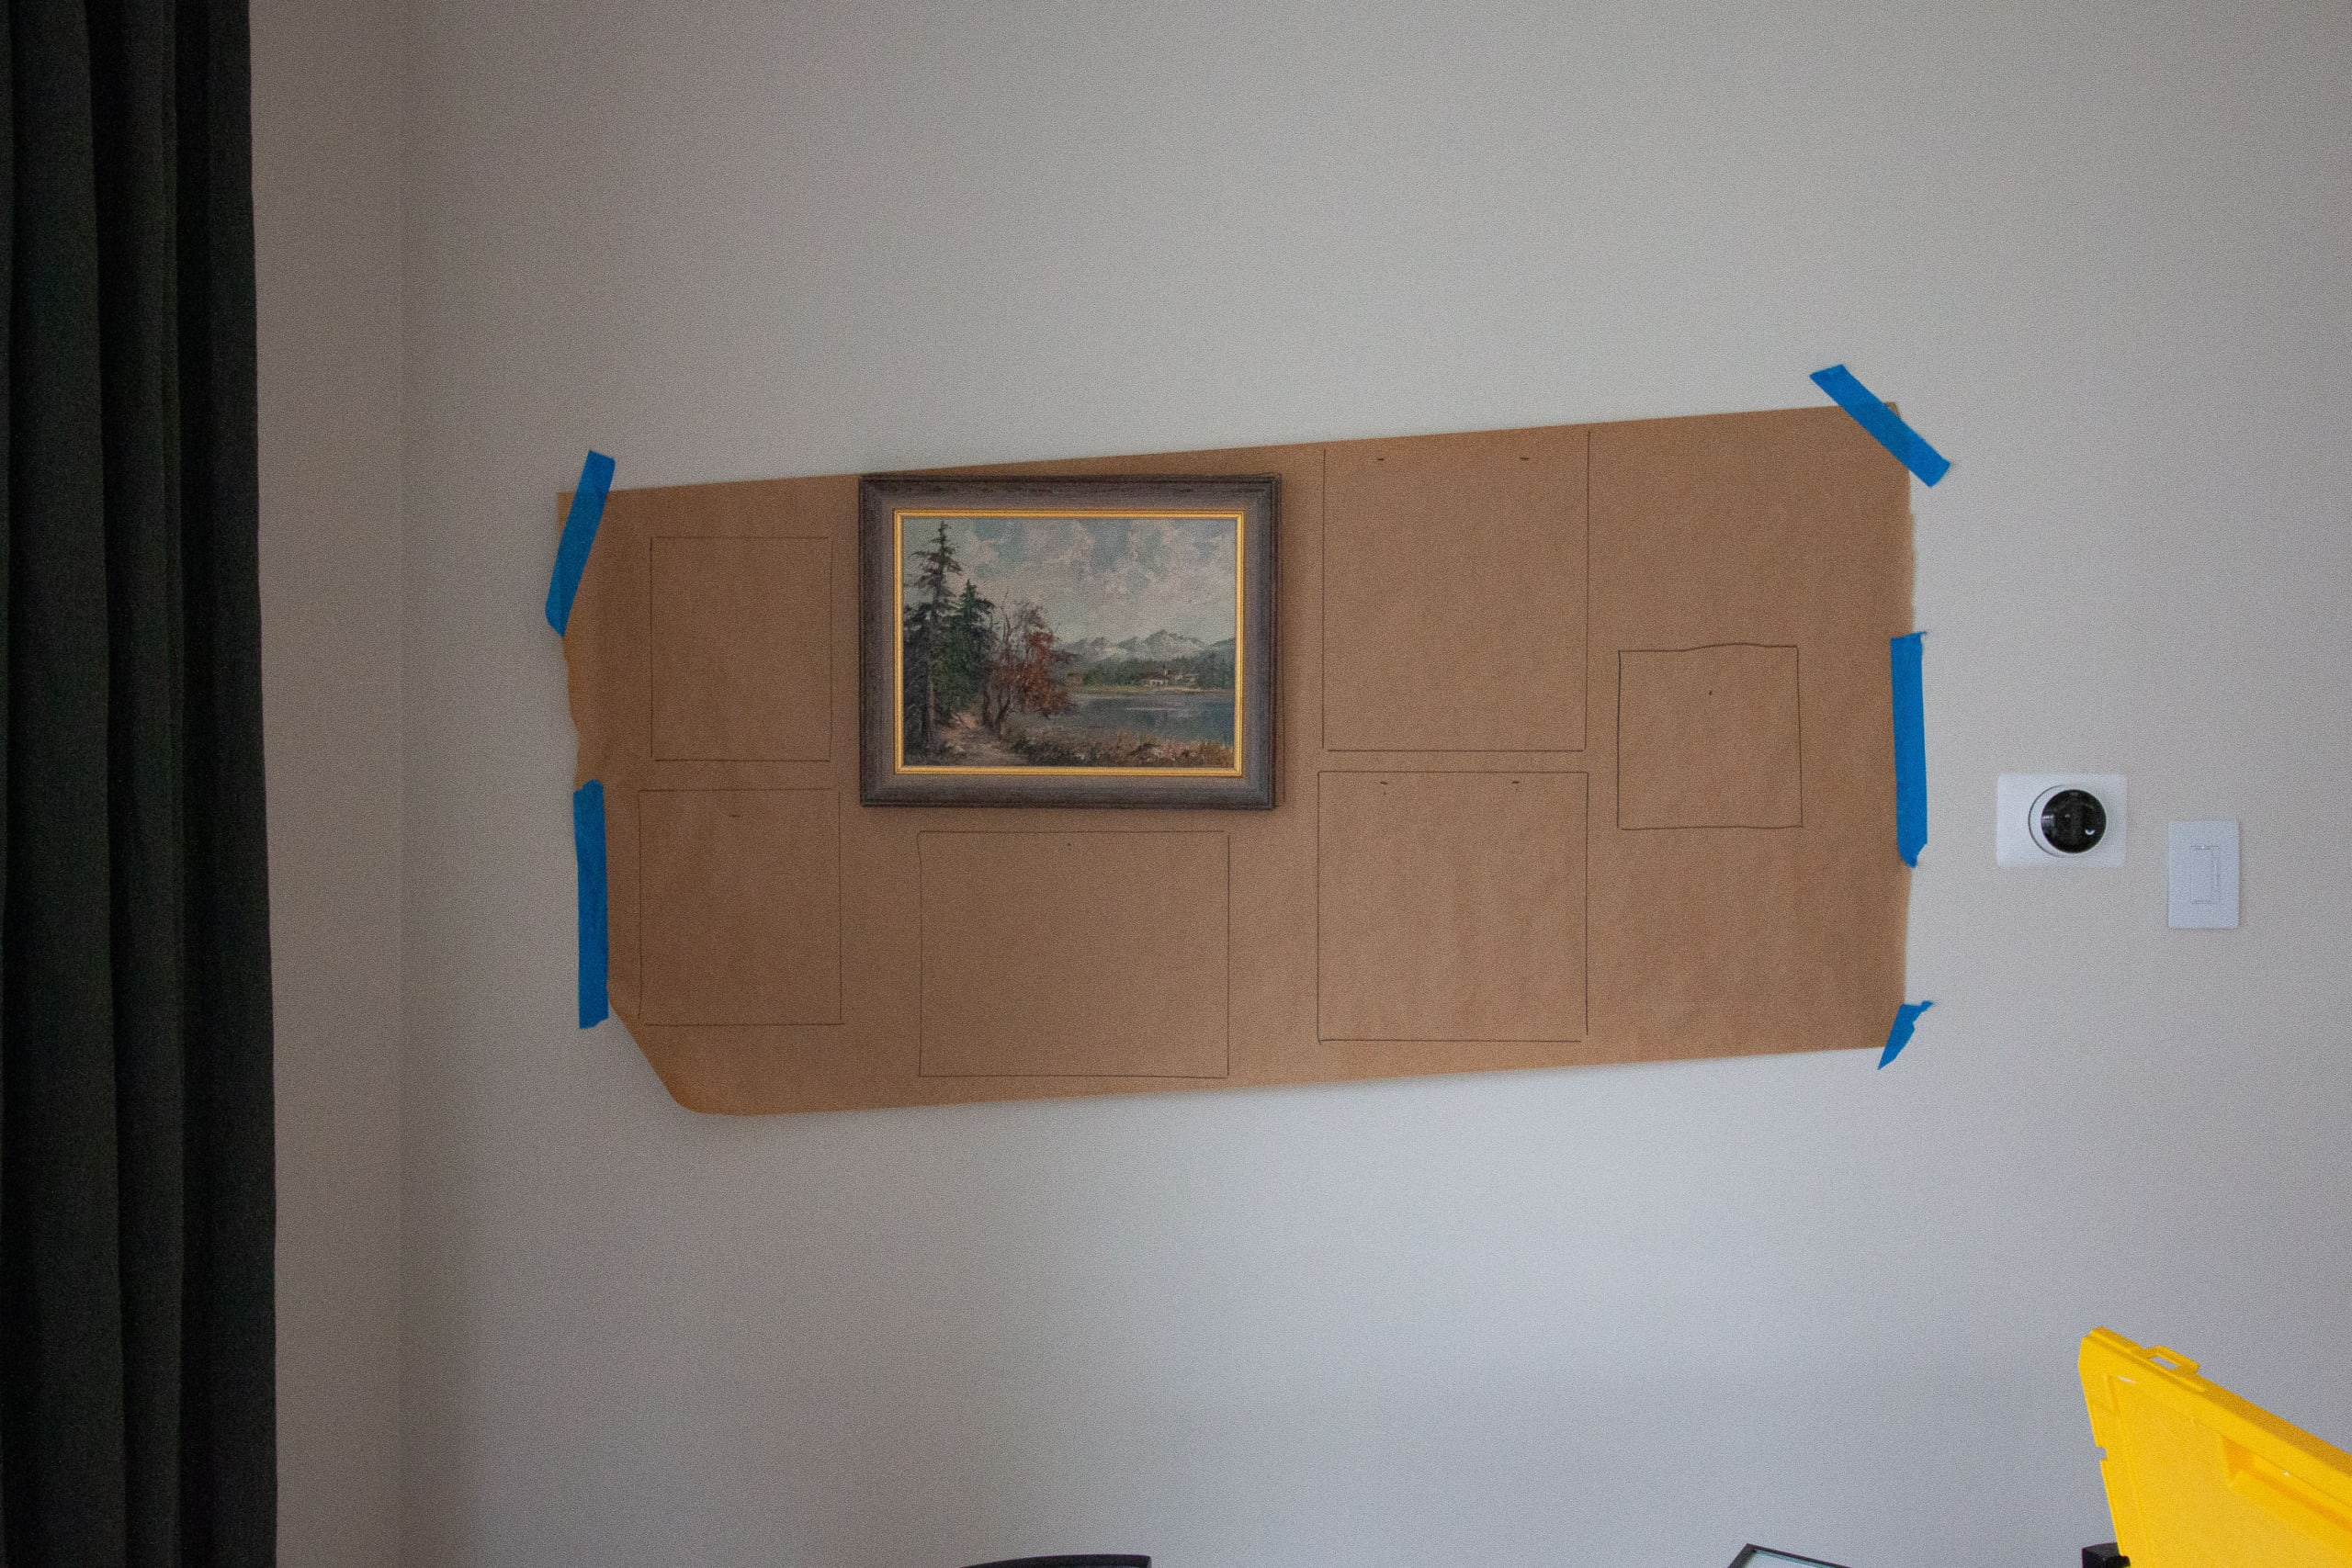 Hanging a living room gallery wall